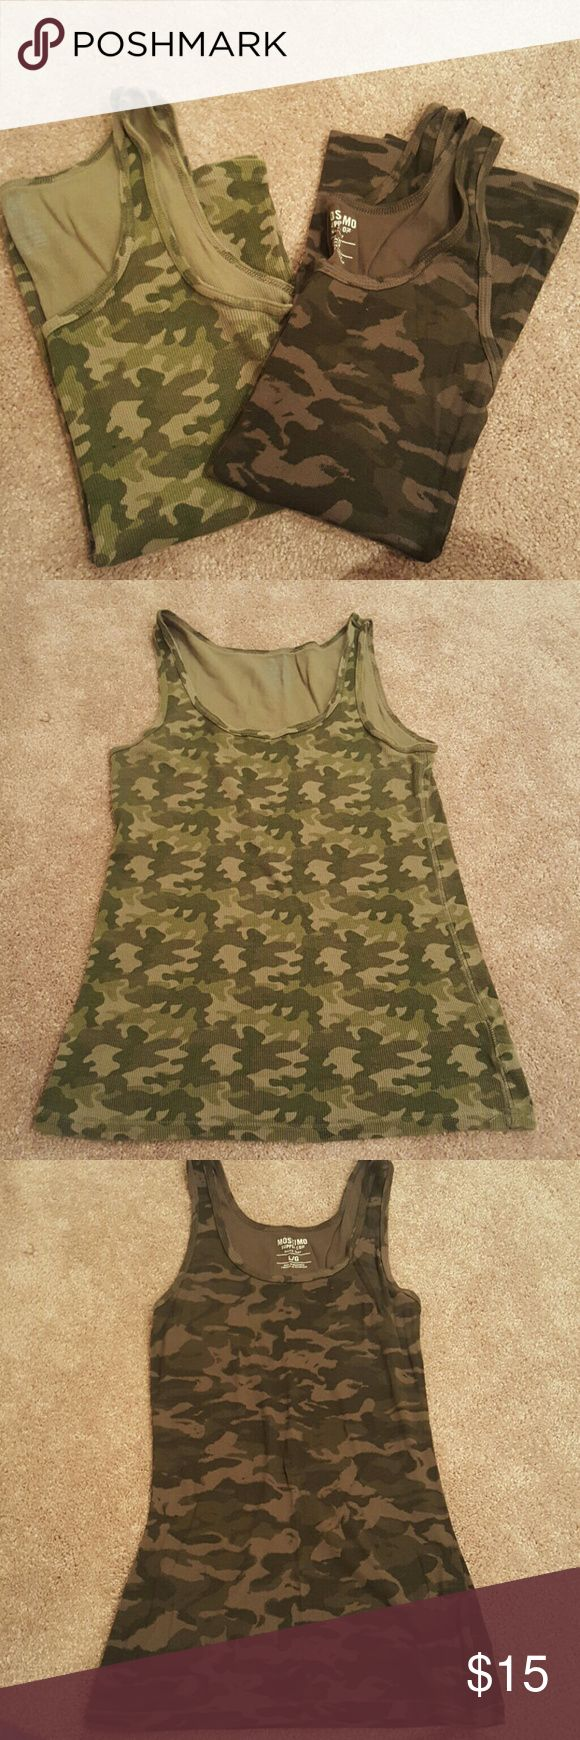 Camo tank tops bundle of 2 2 camo tank tops.  Both are EUC worn only a few times. the lighter one (2nd pic) is an XL Faded Glory brand and the darker one is a large Mossimo brand.  Can fit an XL. Mossimo Supply Co. Tops Tank Tops